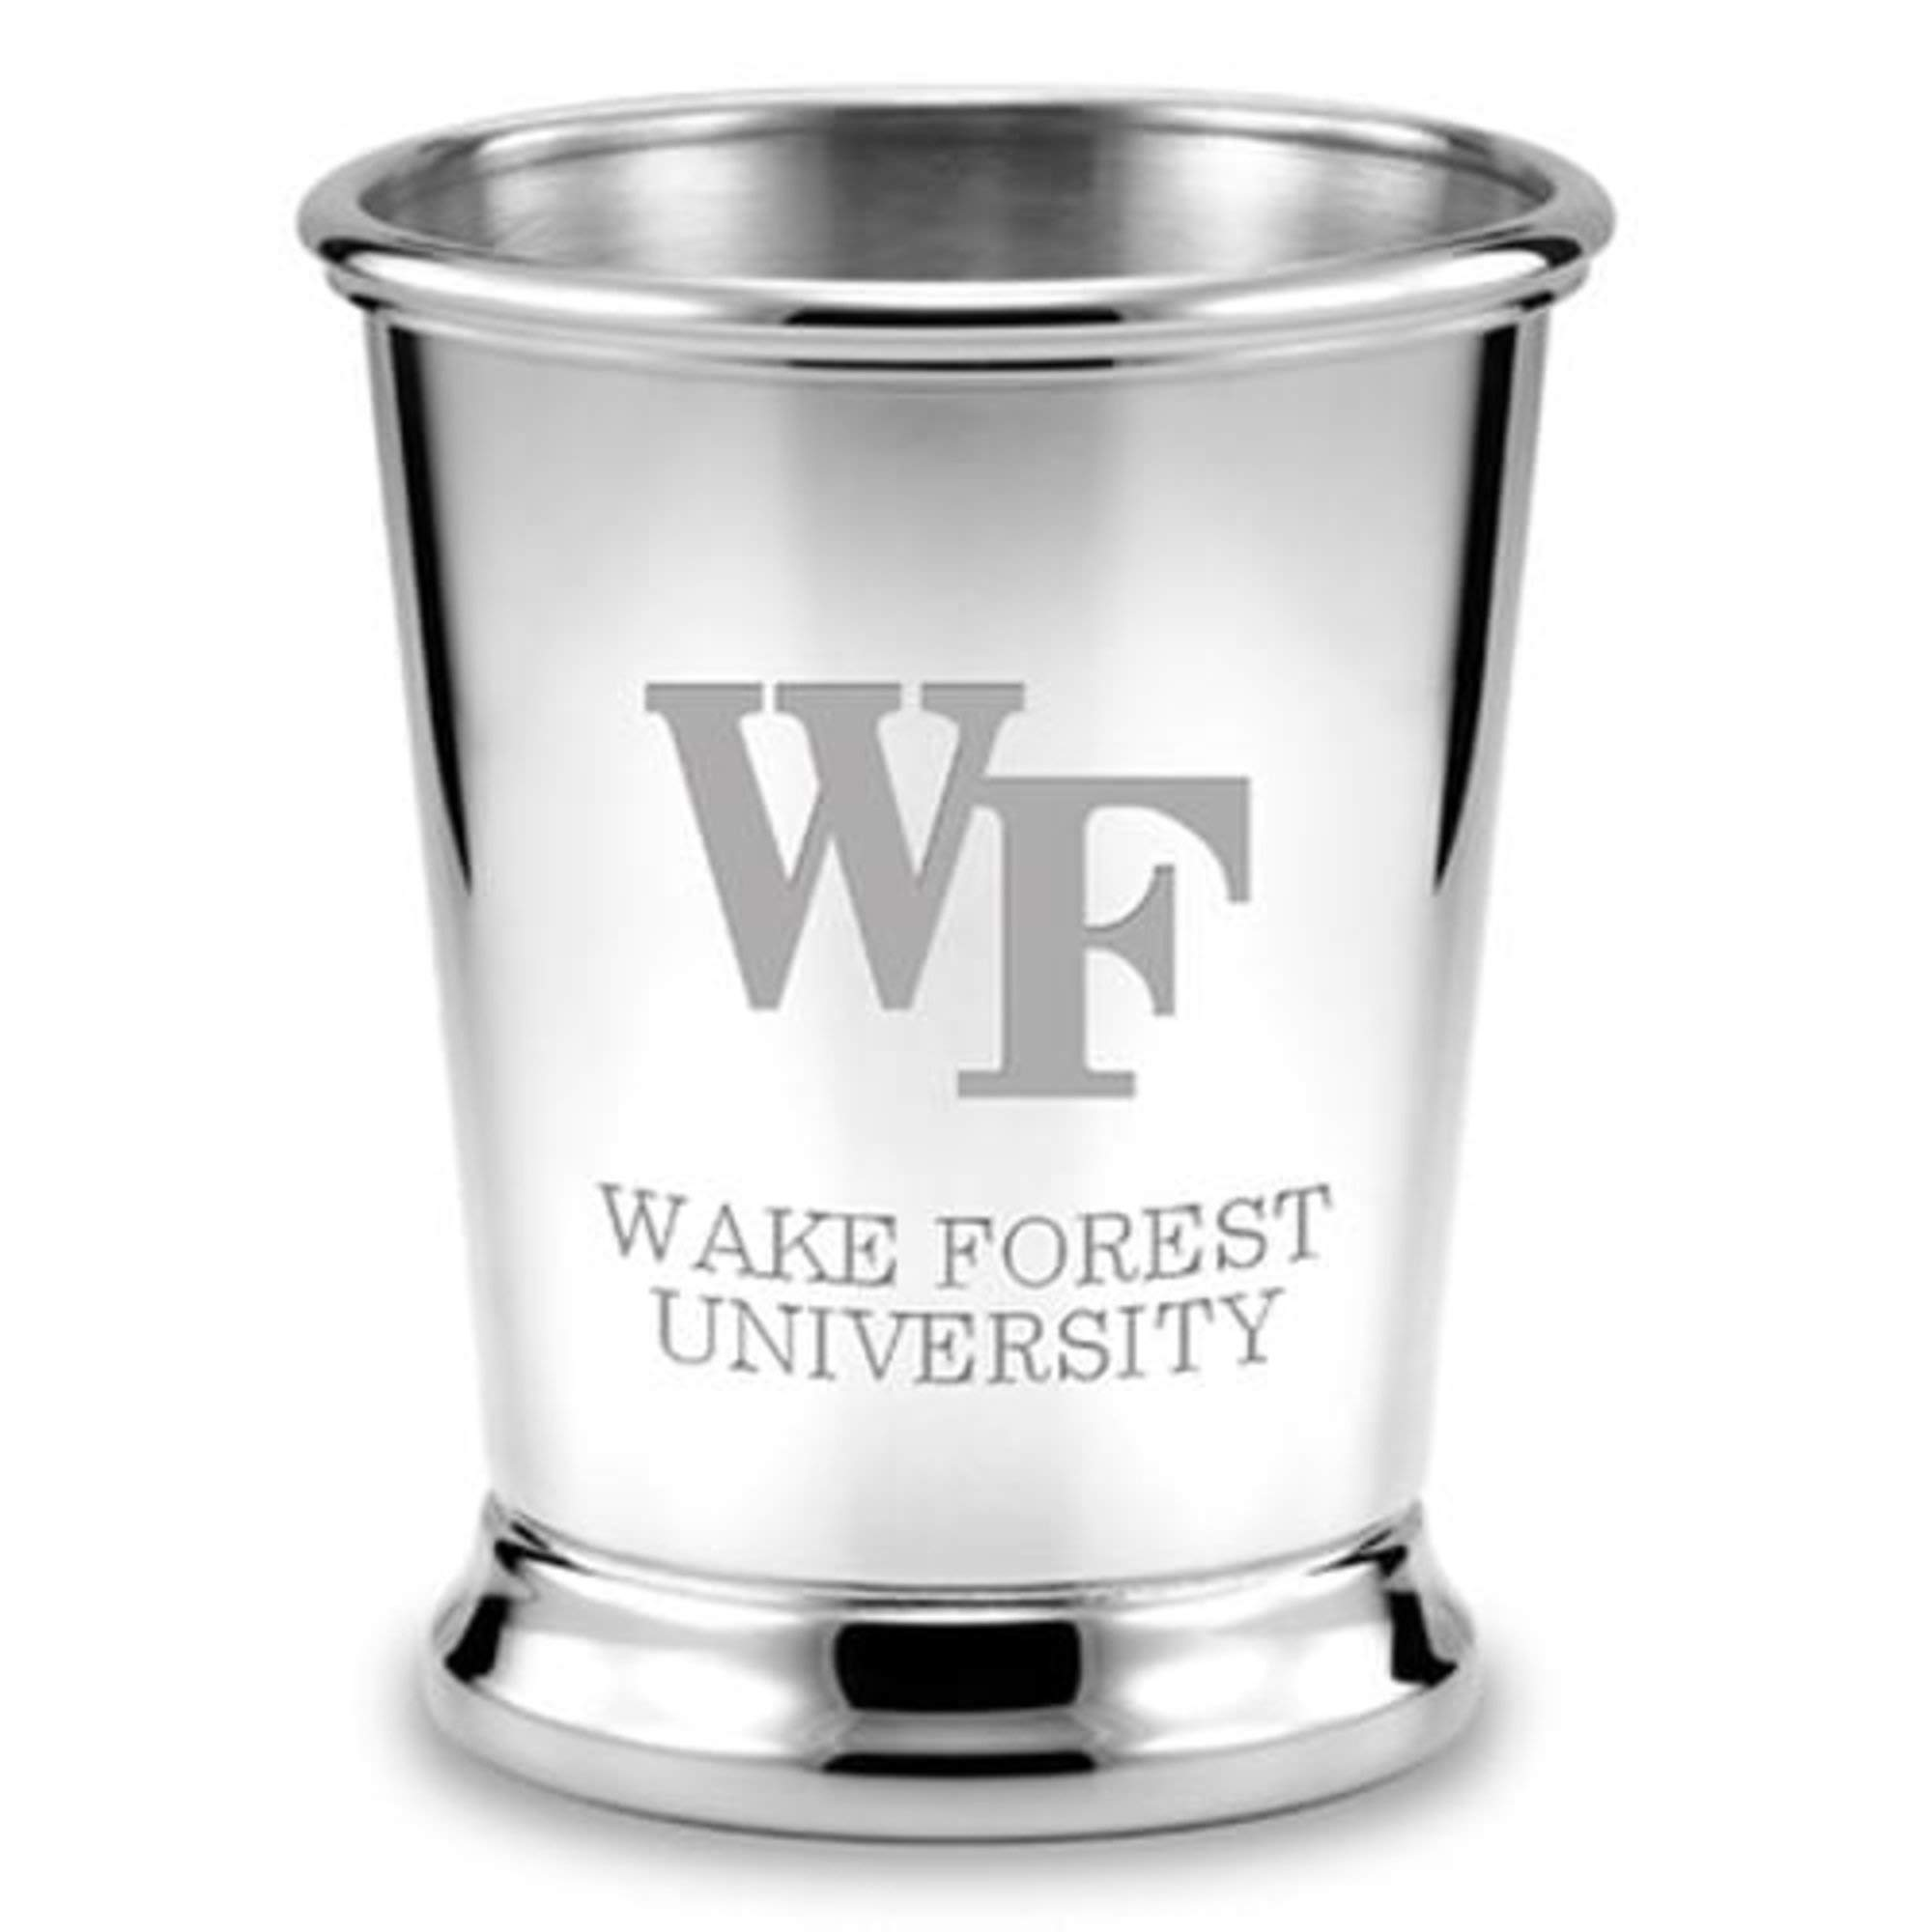 M. LA HART Wake Forest Pewter Julep Cup